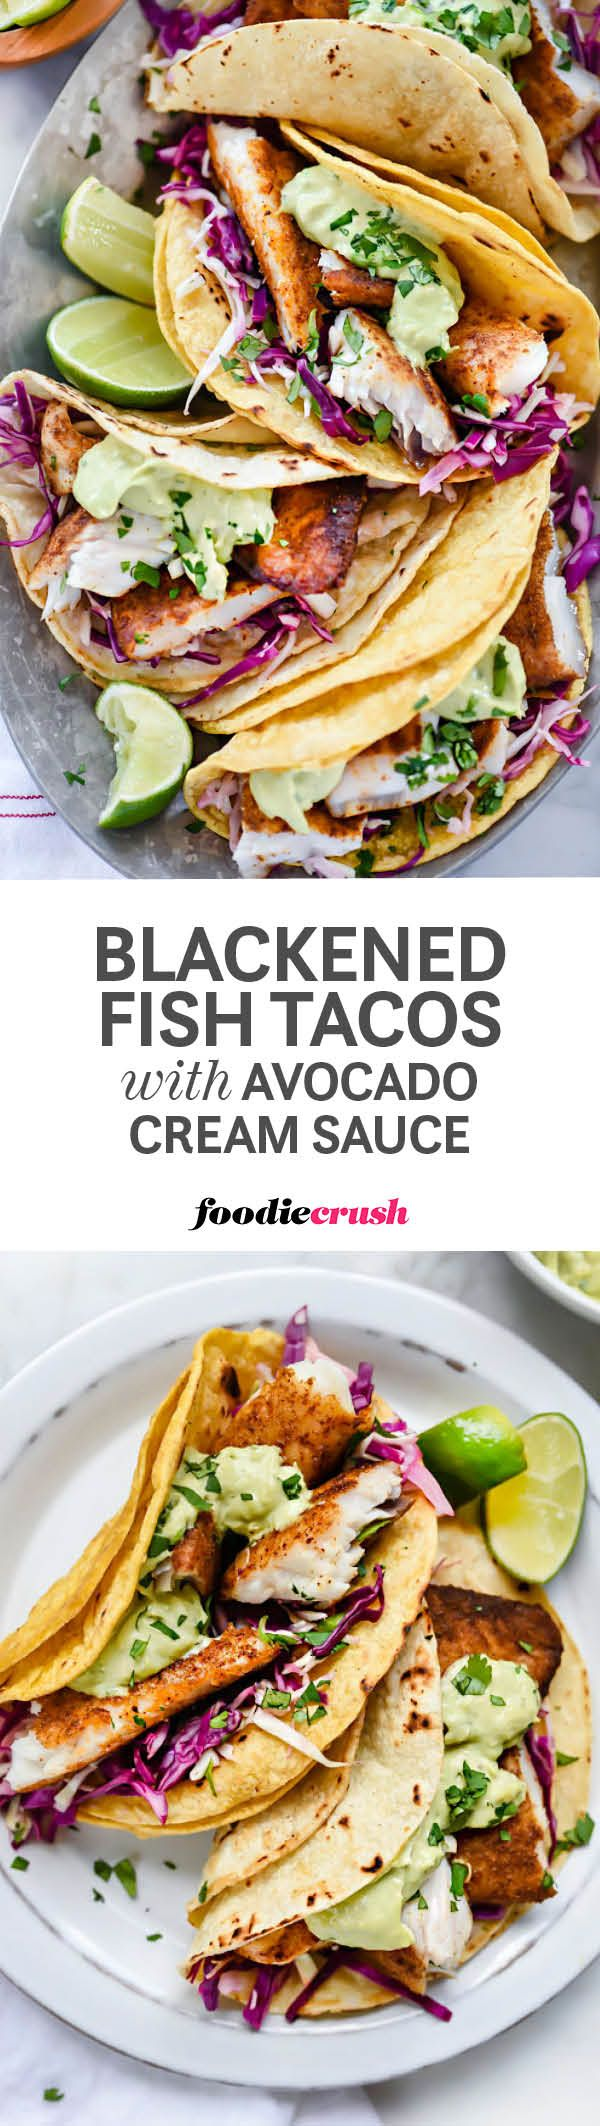 Baja-style fish tacos get a blackened cajun fix cooled off with an avocado cilantro tartar sauce and cabbage for a fast and easy taco meal. | http://foodiecrush.com #tacos #fishtacos